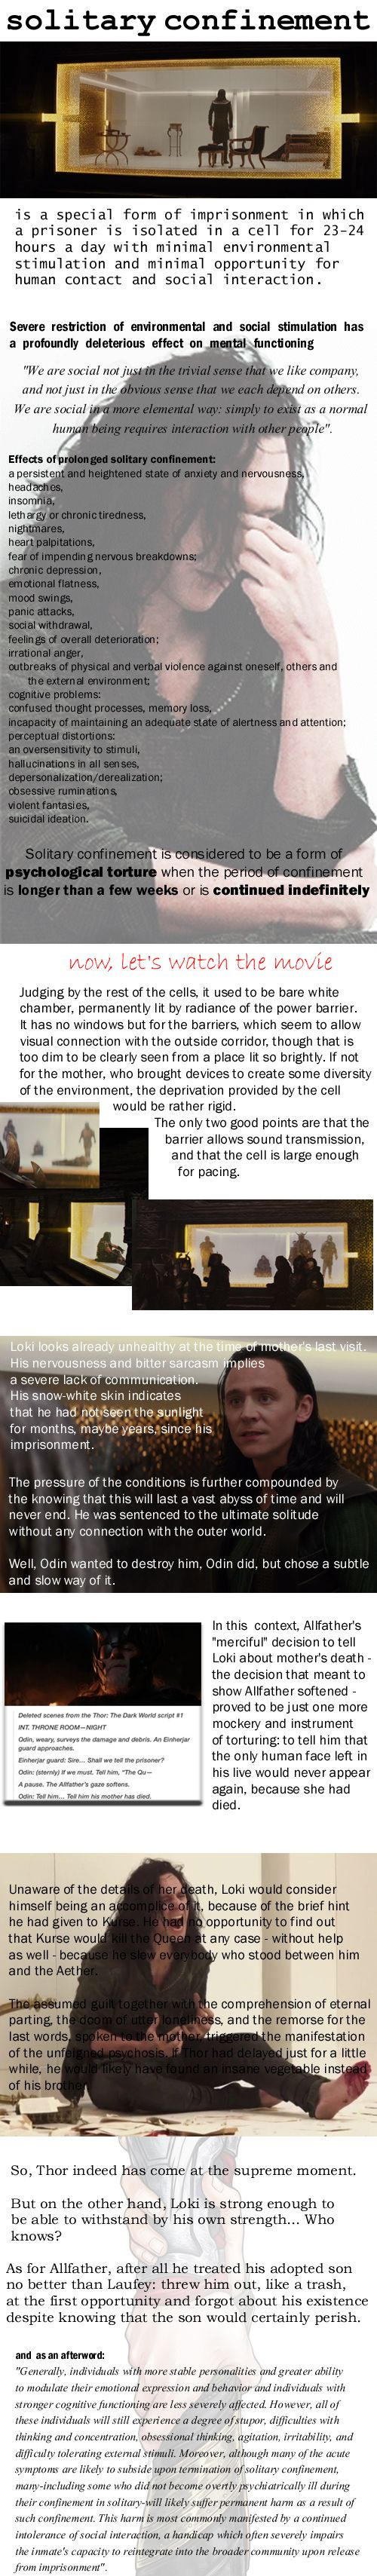 In short Odin pushed Loki to Psychological and Emotional breaking point and beyond. This is why Odin is evil to Loki, who on the grand scheme of things needs two loving parents.